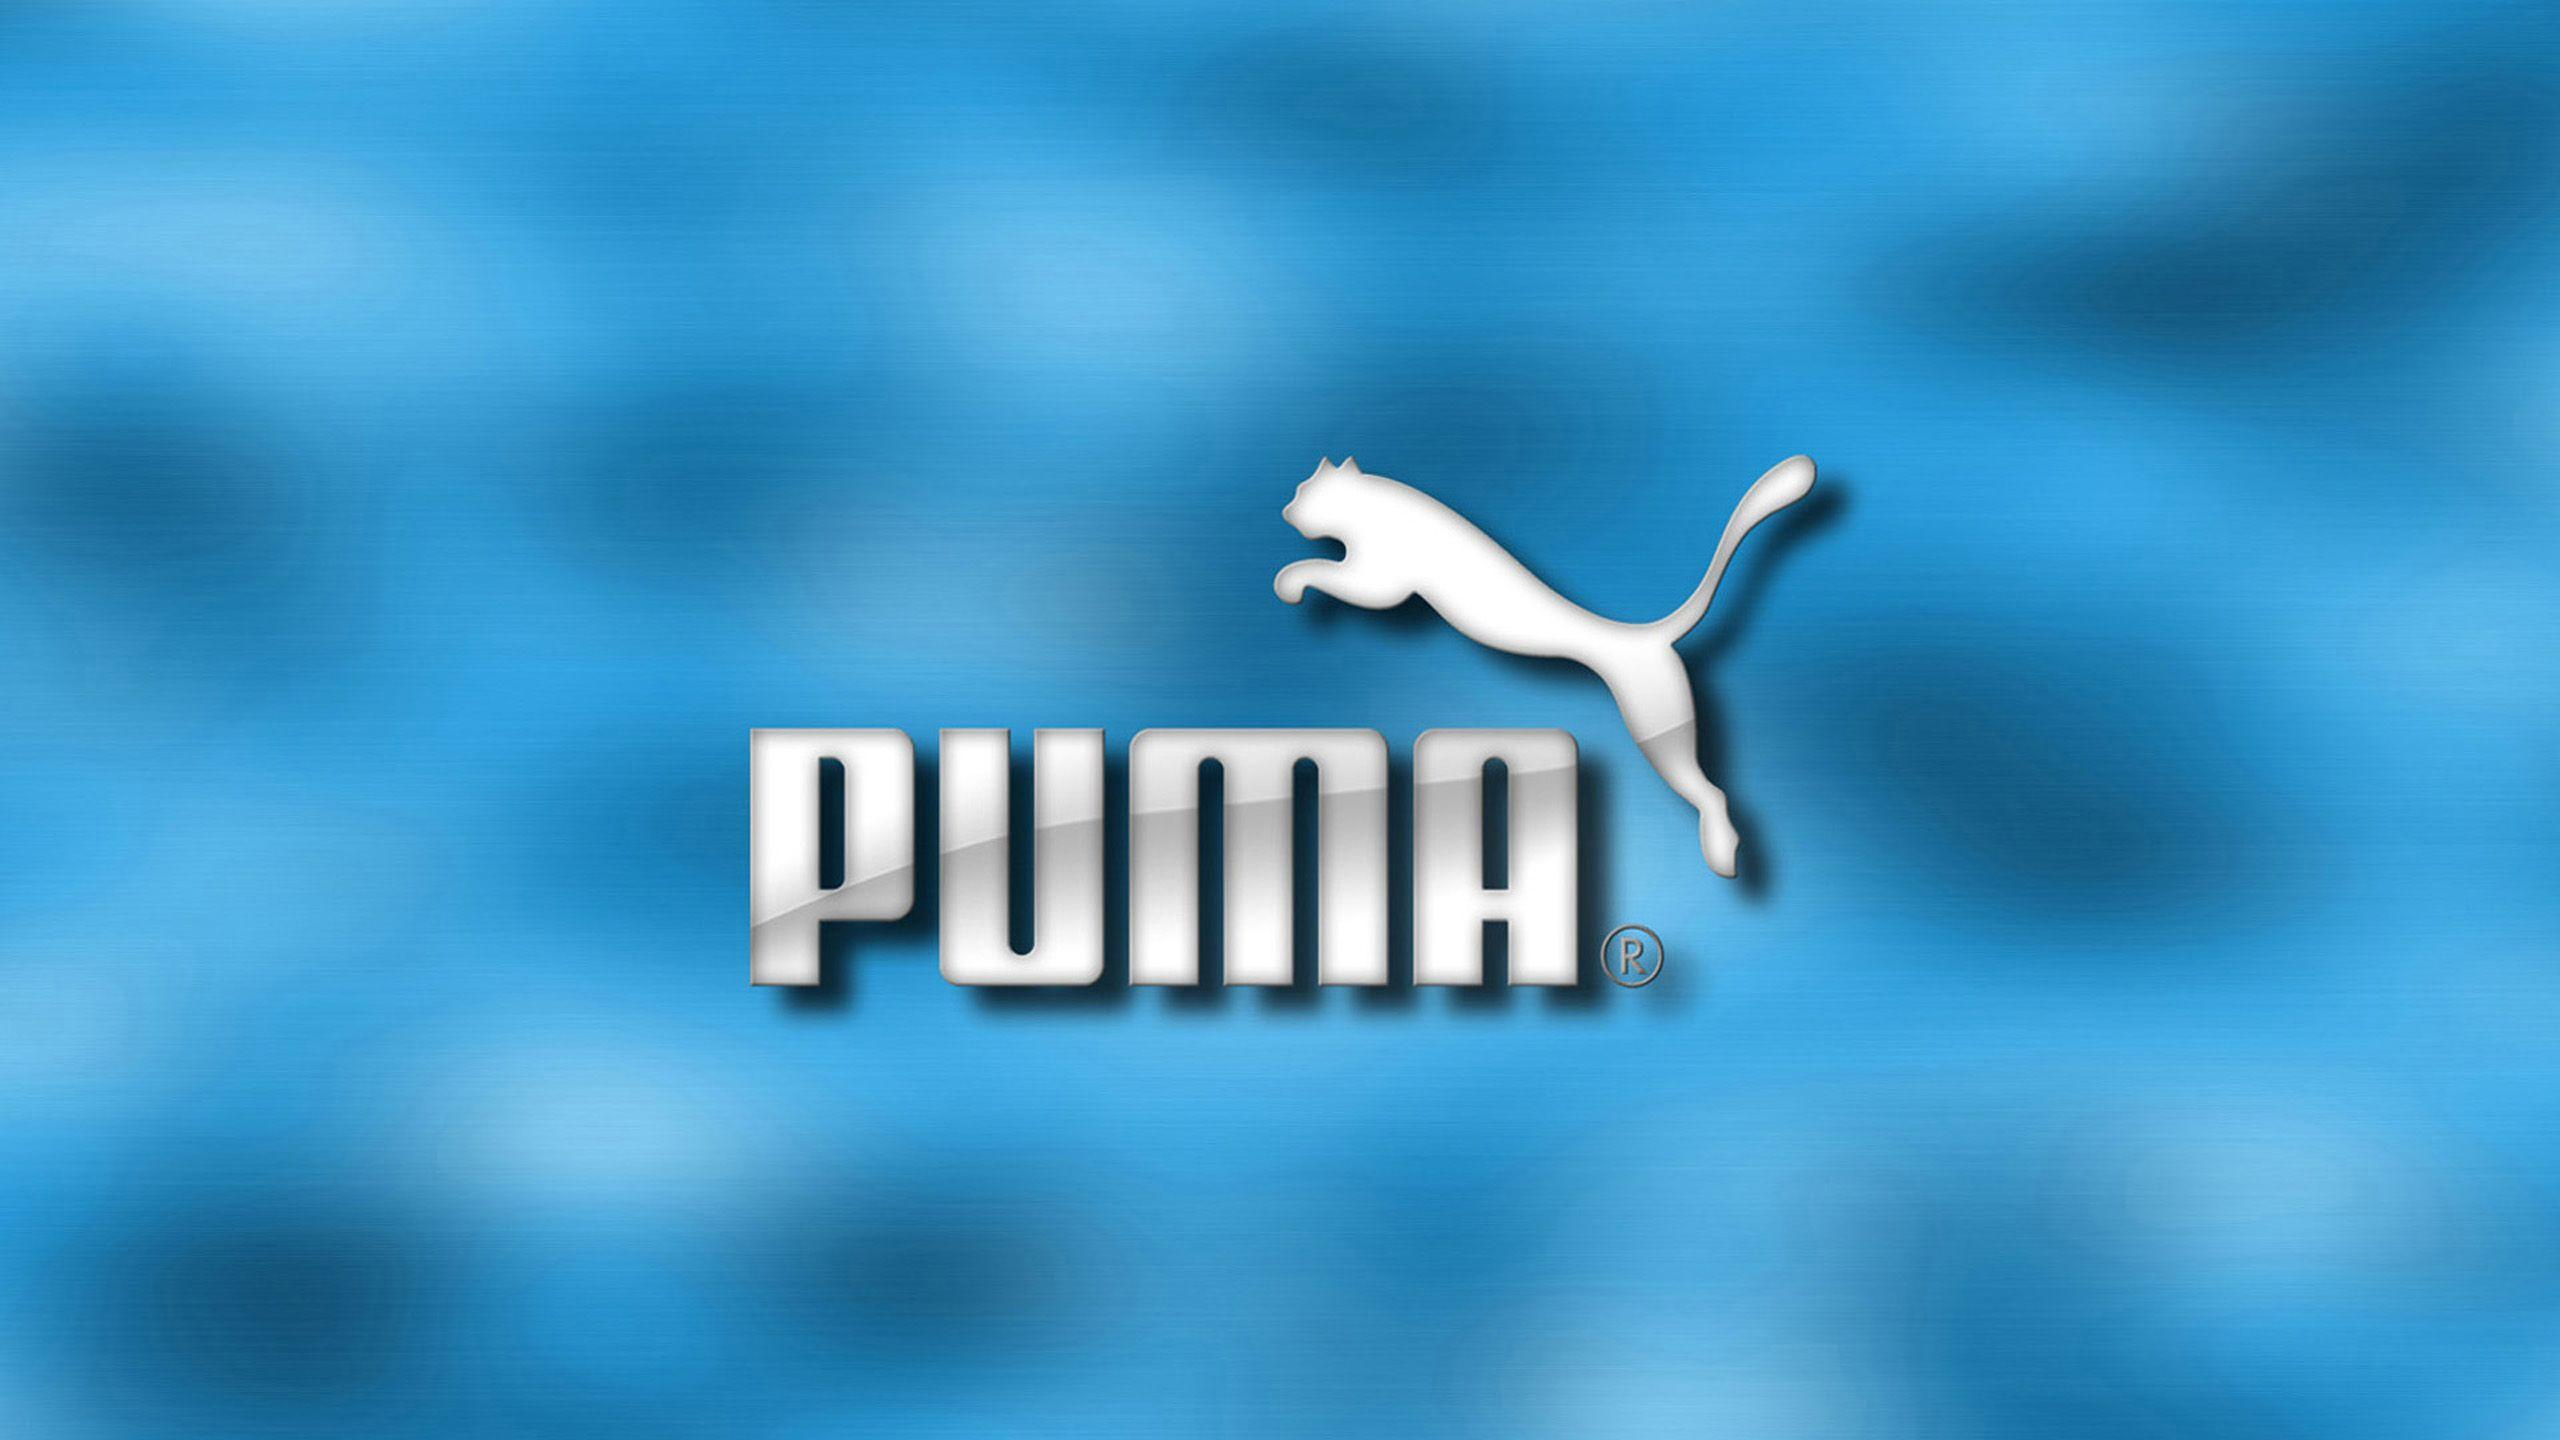 Famous logo-Puma wallpapers, HD Wallpaper Downloads